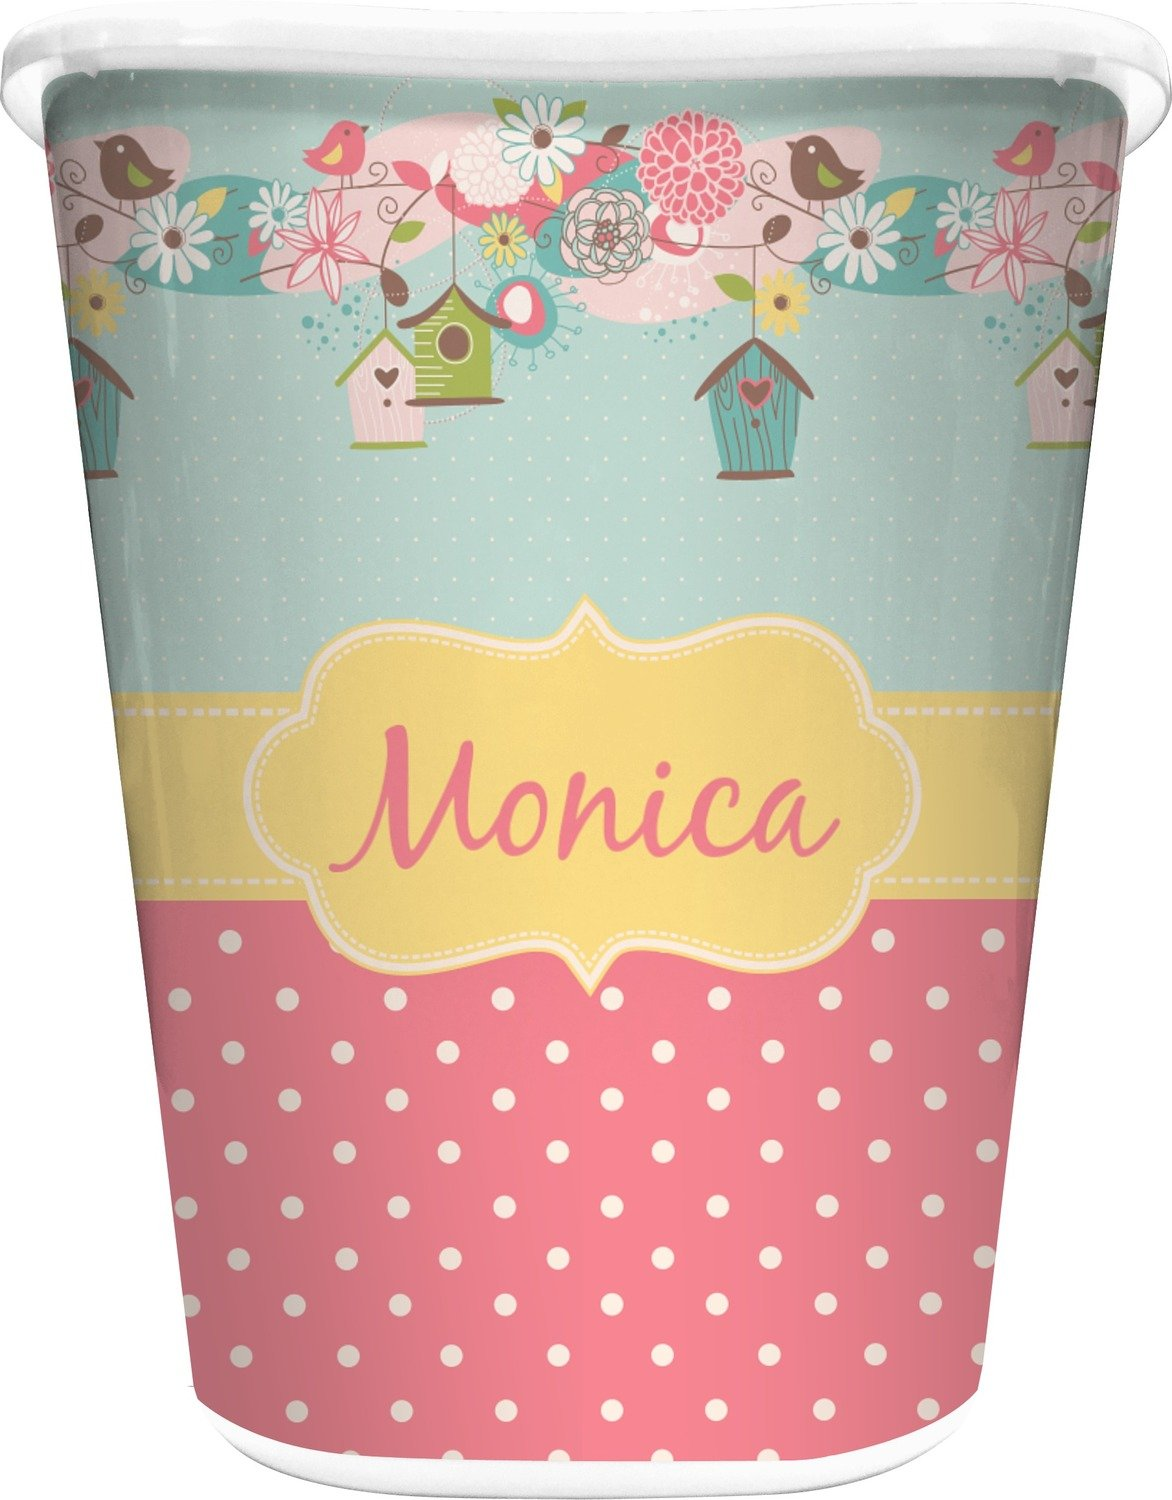 RNK Shops Easter Birdhouses Waste Basket - Double Sided (White) (Personalized) by RNK Shops (Image #1)